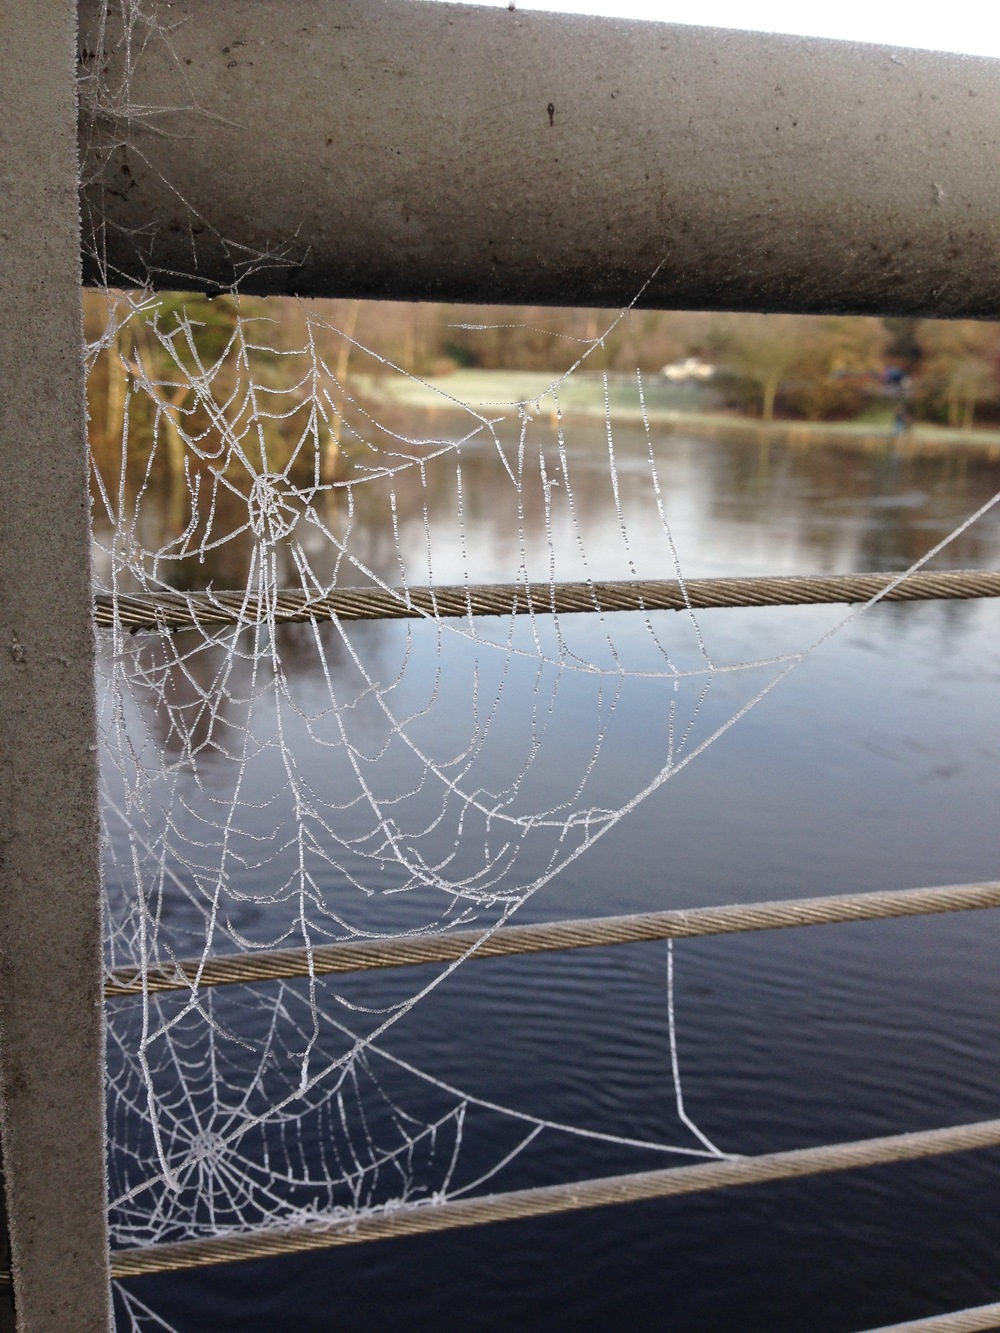 even the spiderwebs froze solid